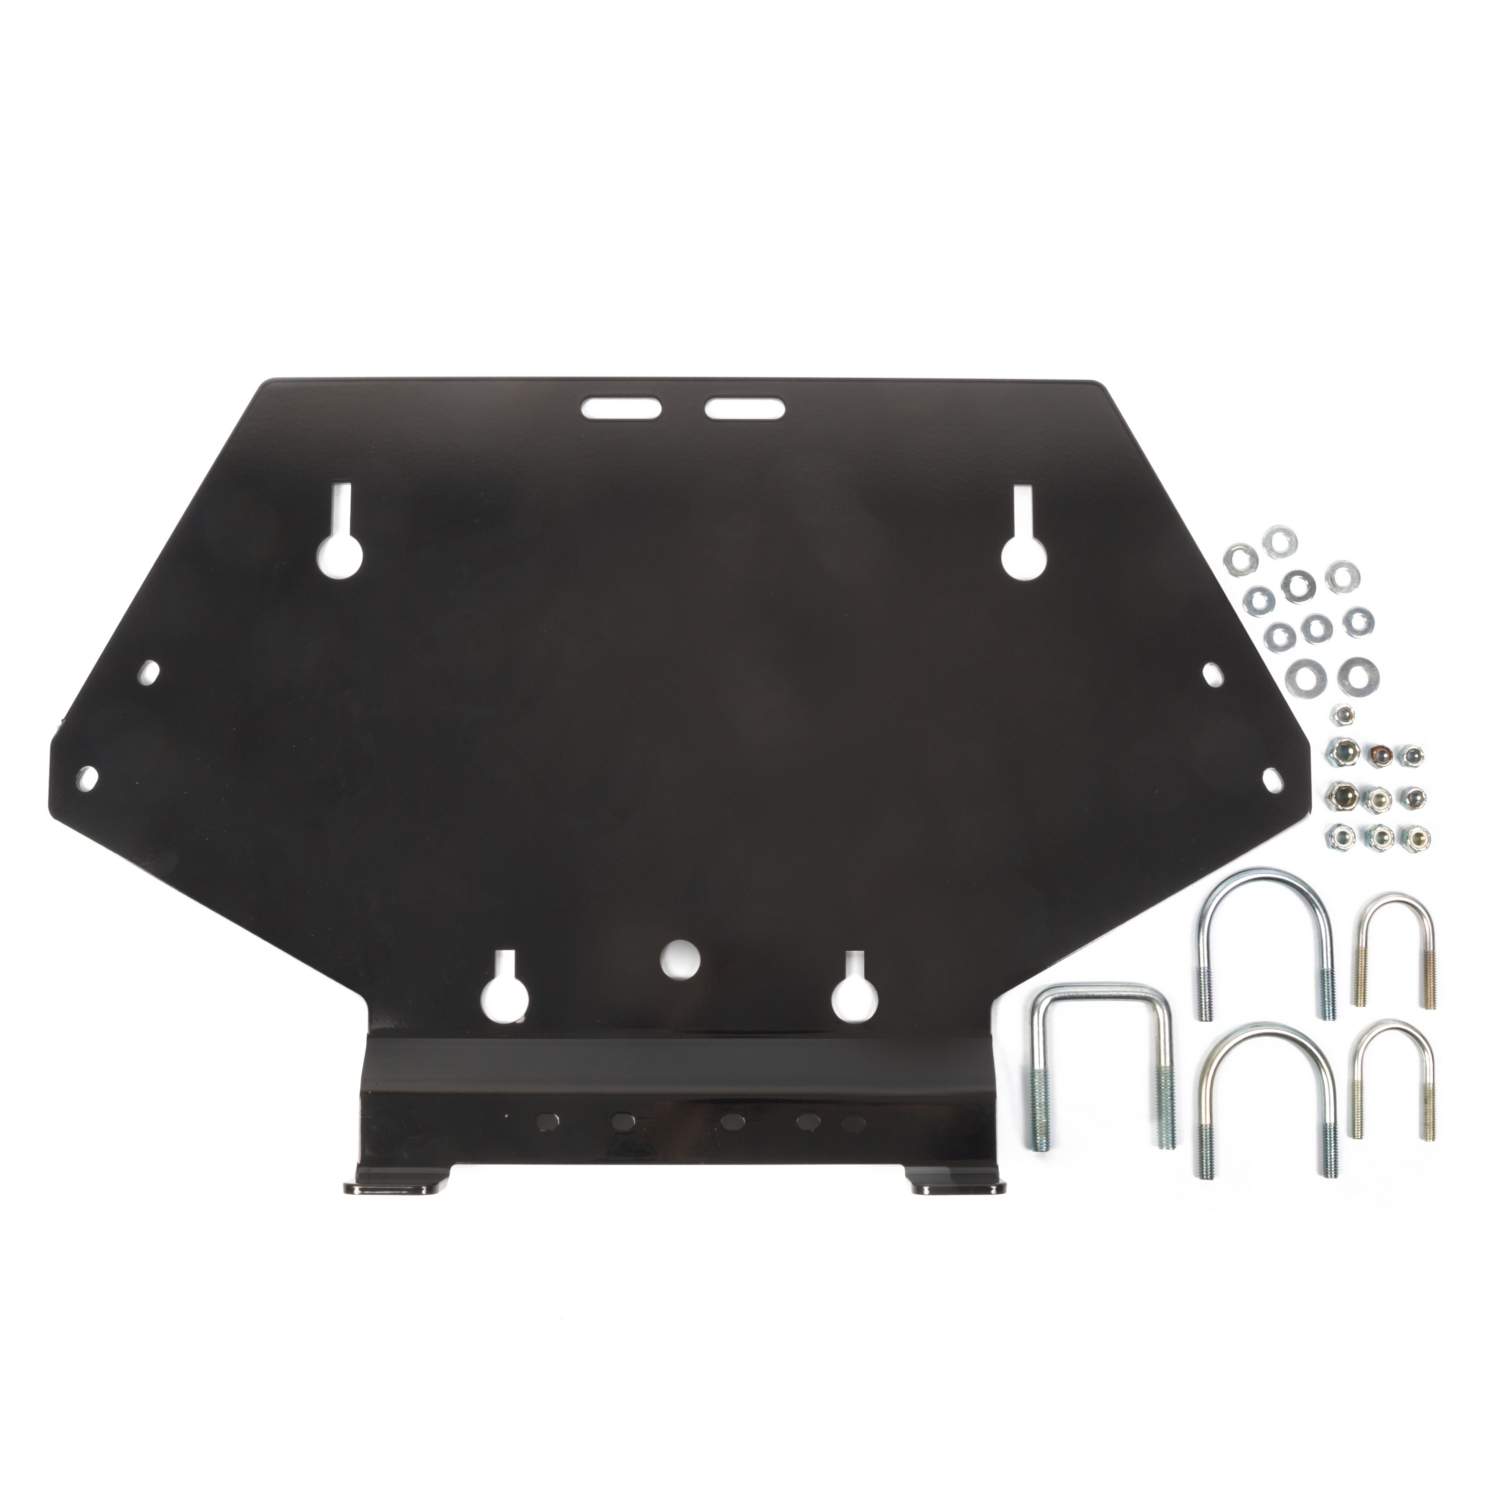 CLICK nGO CNG 2 Snow Plow Bracket for UTV Black #374146 by Snowplows